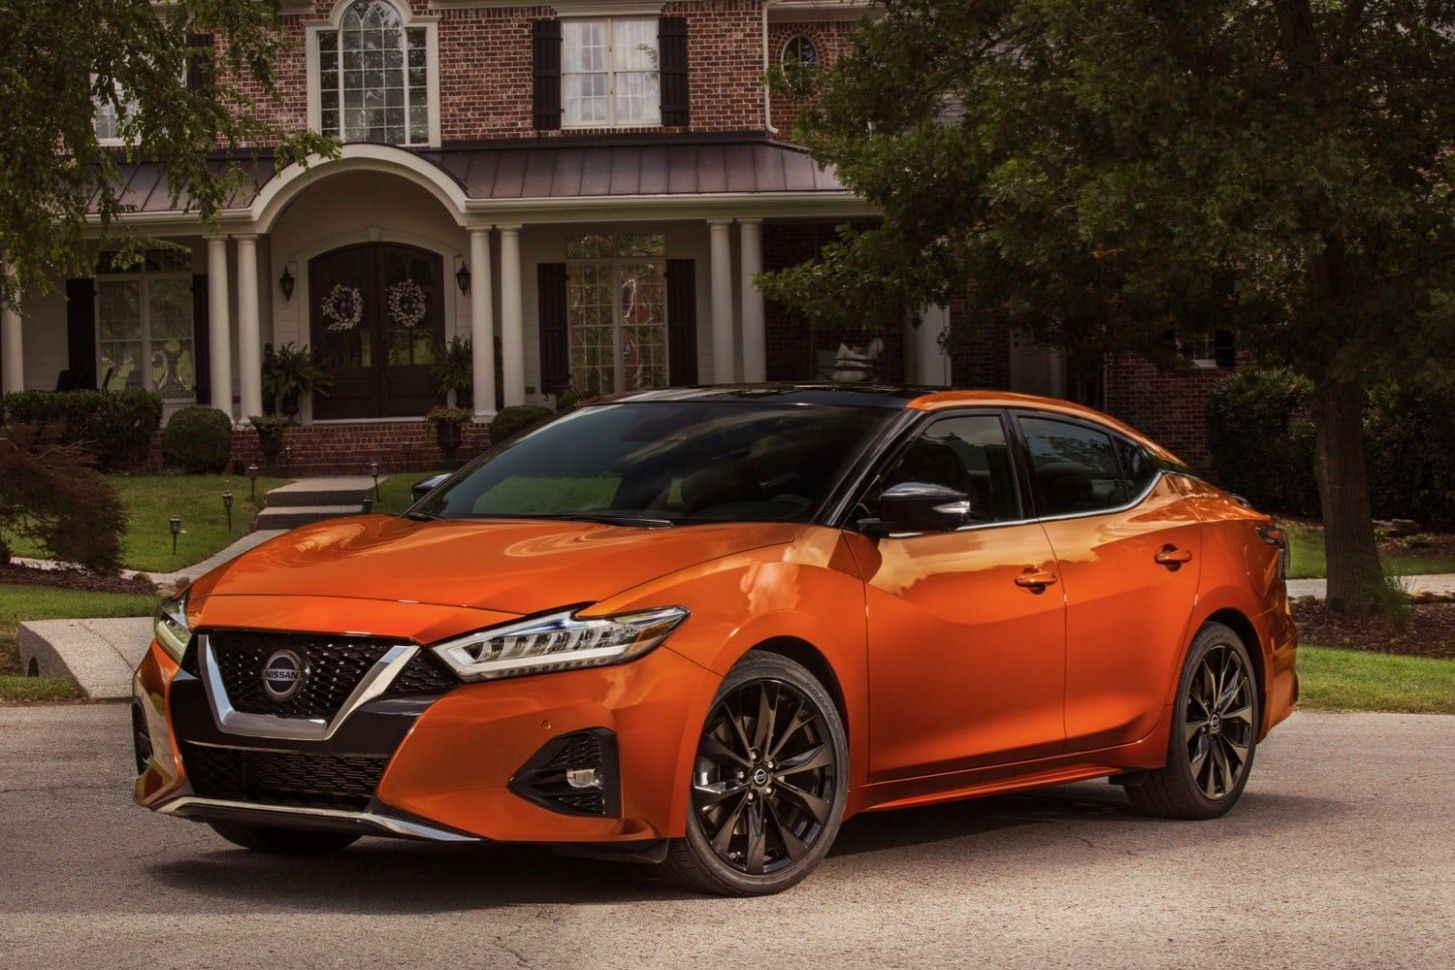 2020 nissan maxima nismo price design and review in 2020